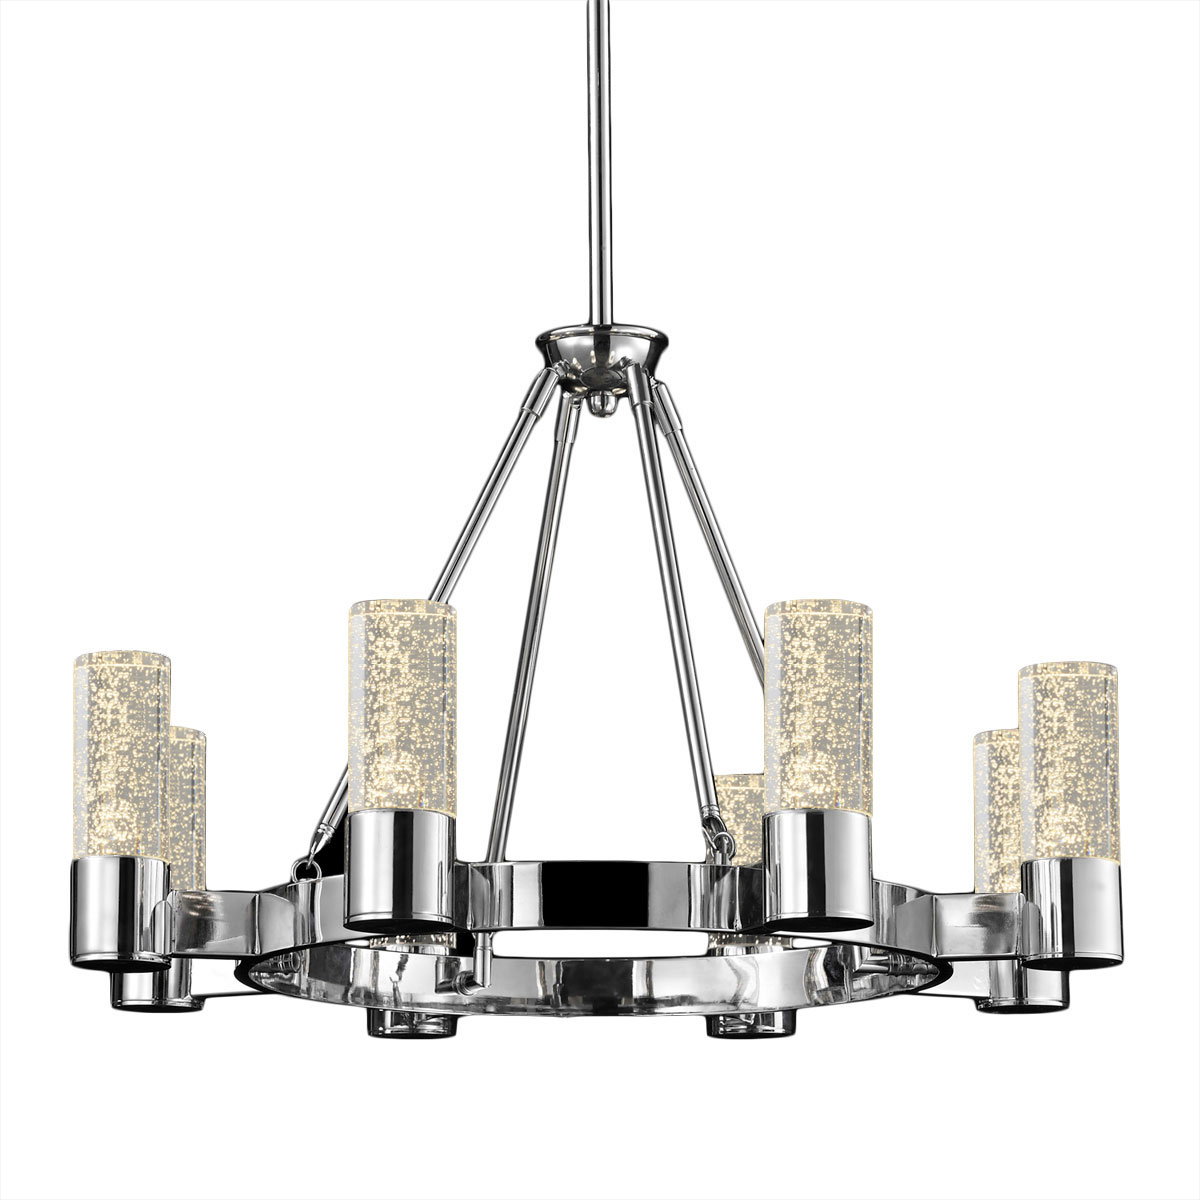 Lighting weekly furniture deals sales at efurnituremart for Lighting packages for new homes